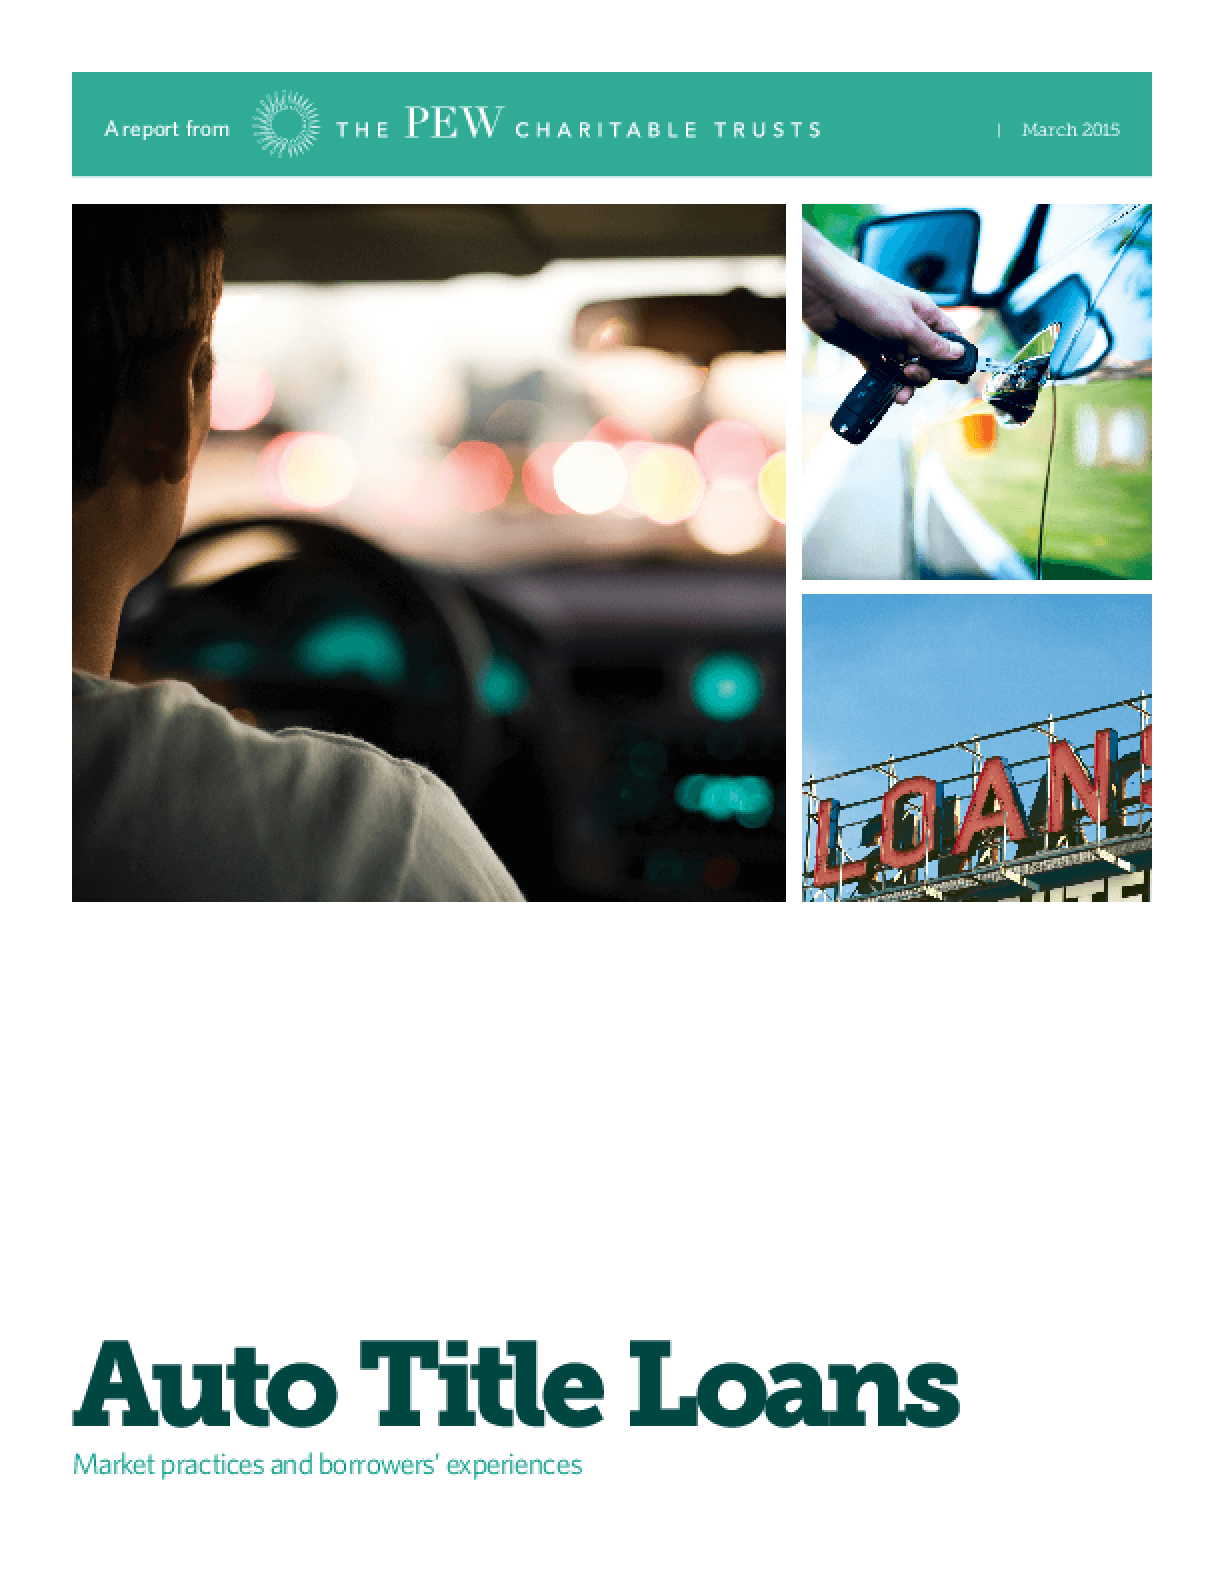 Auto Title Loans: Market Practices and Borrowers' Experiences